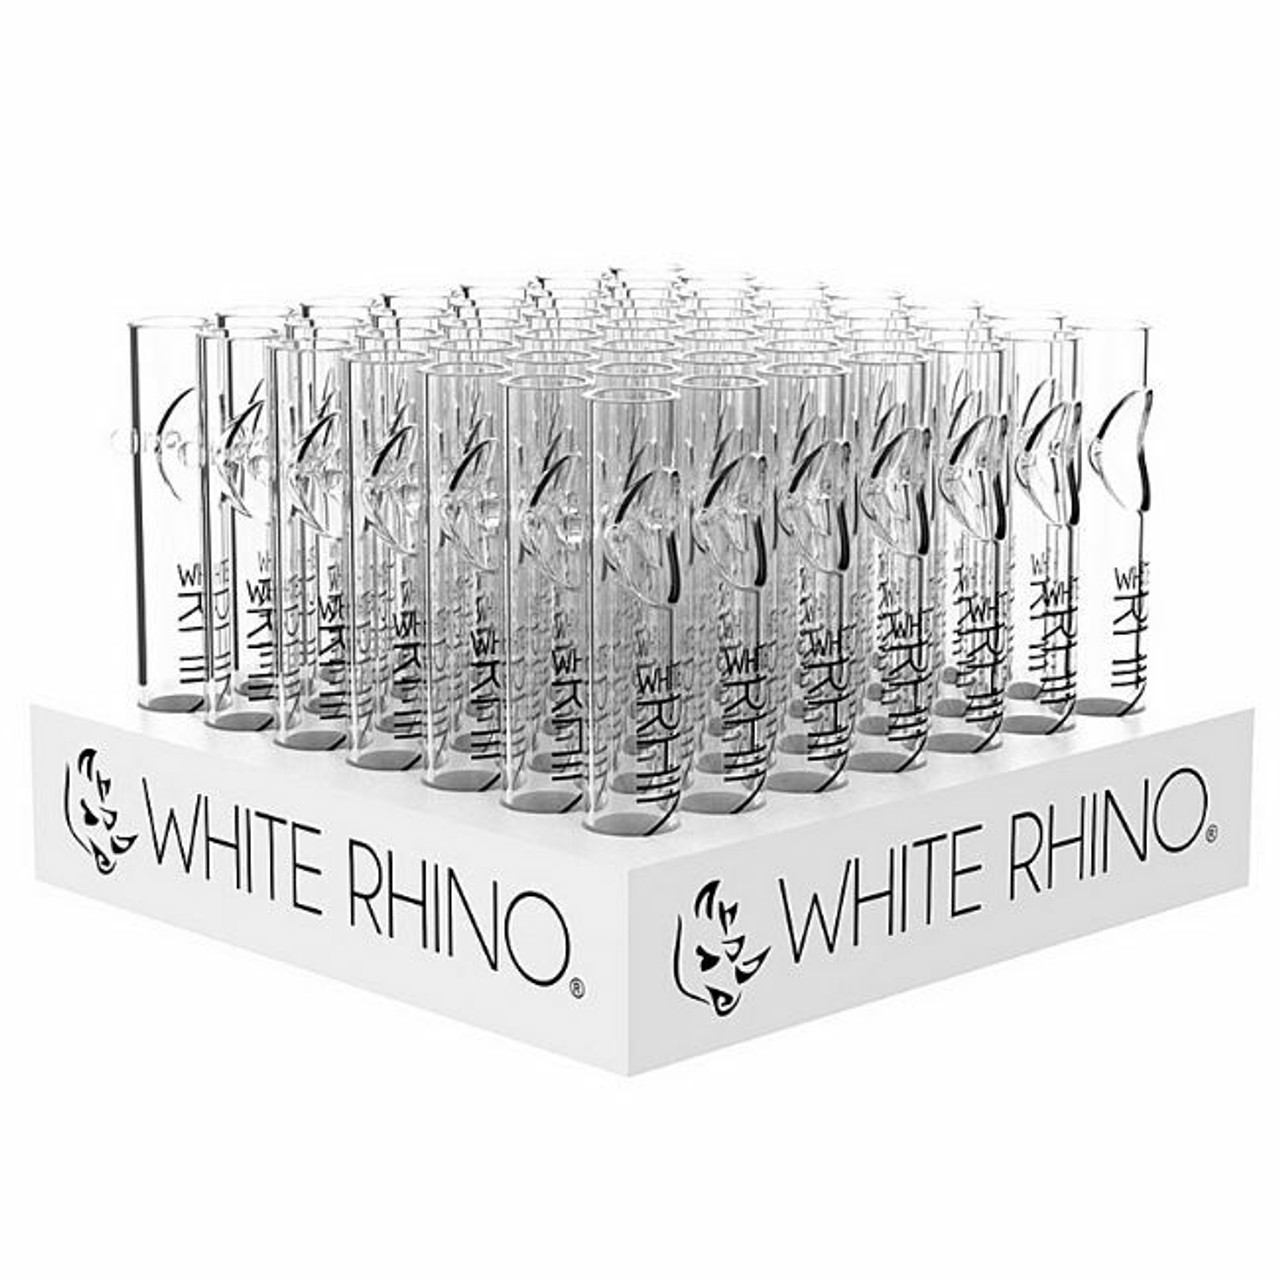 White Rhino Glass Blunt Display - 49ct at The Cloud Supply